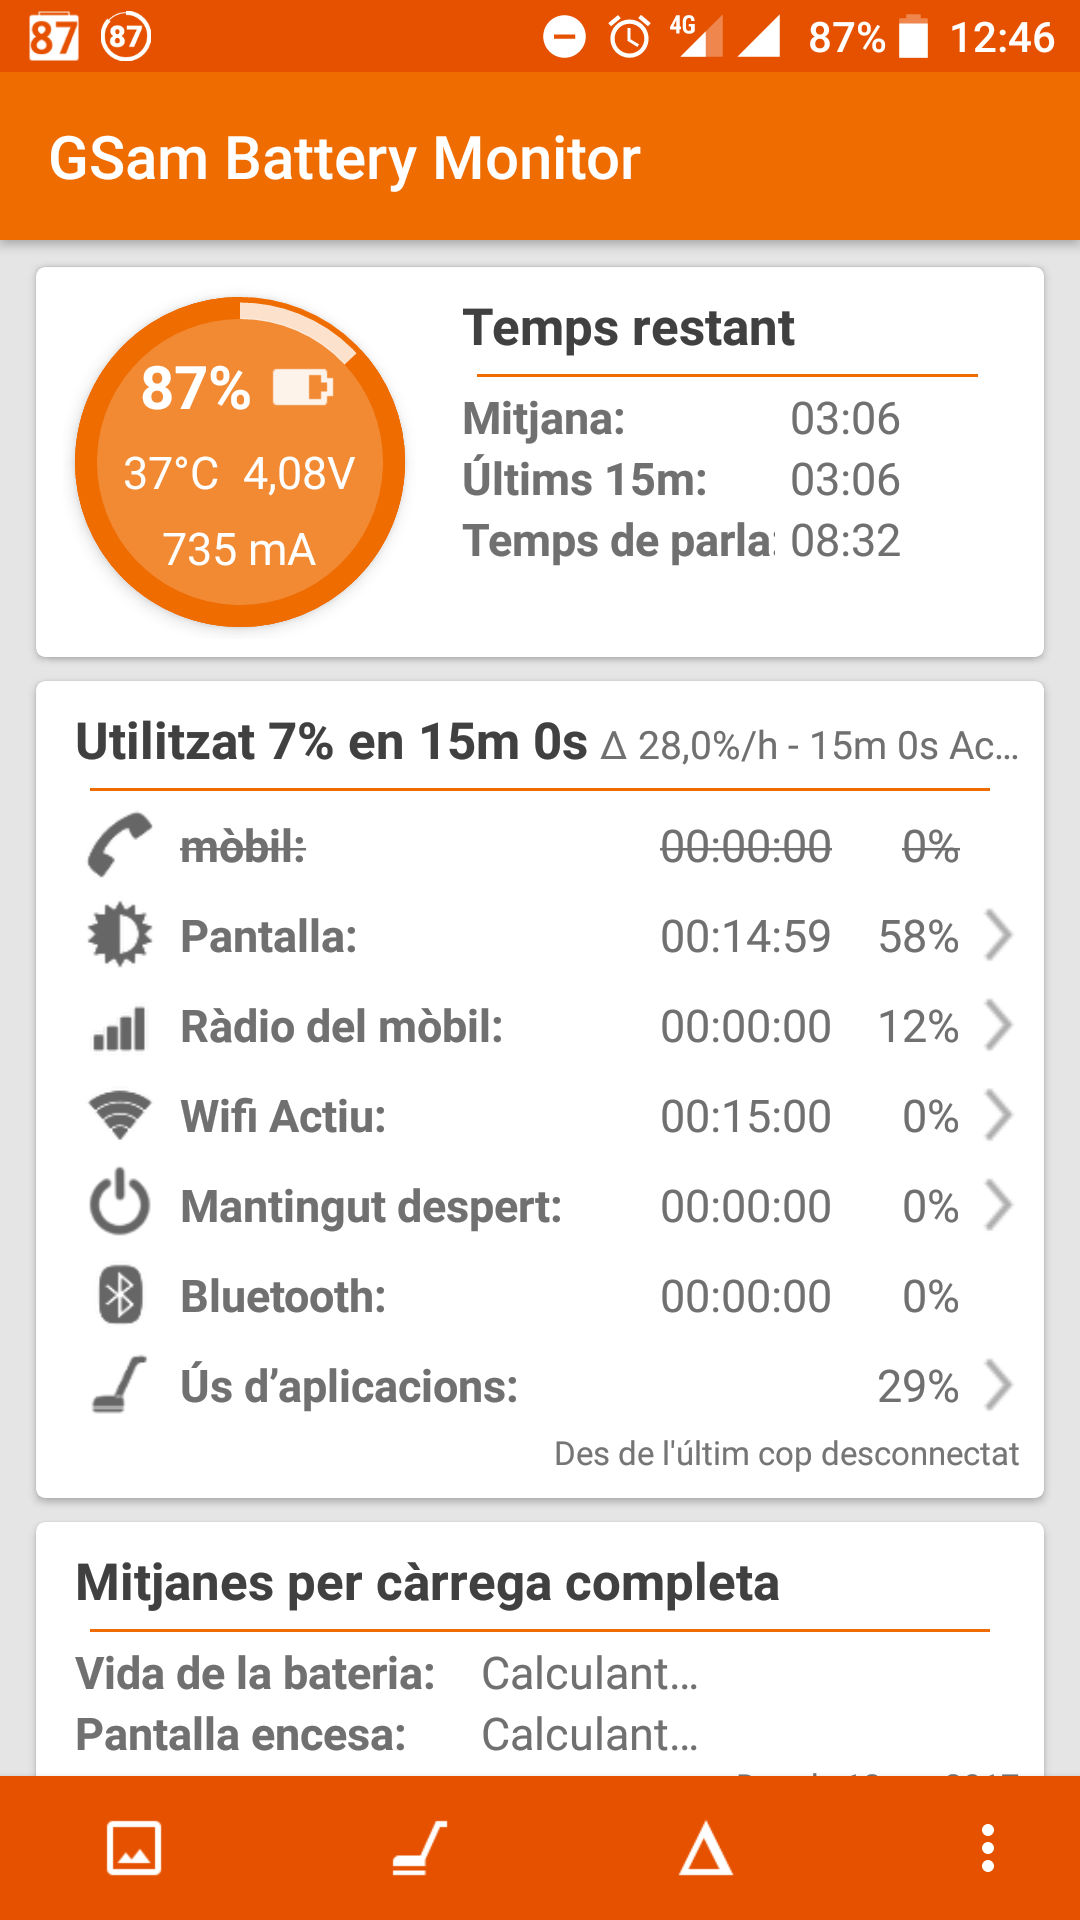 Imatge destacada 1 del GSam Battery Monitor